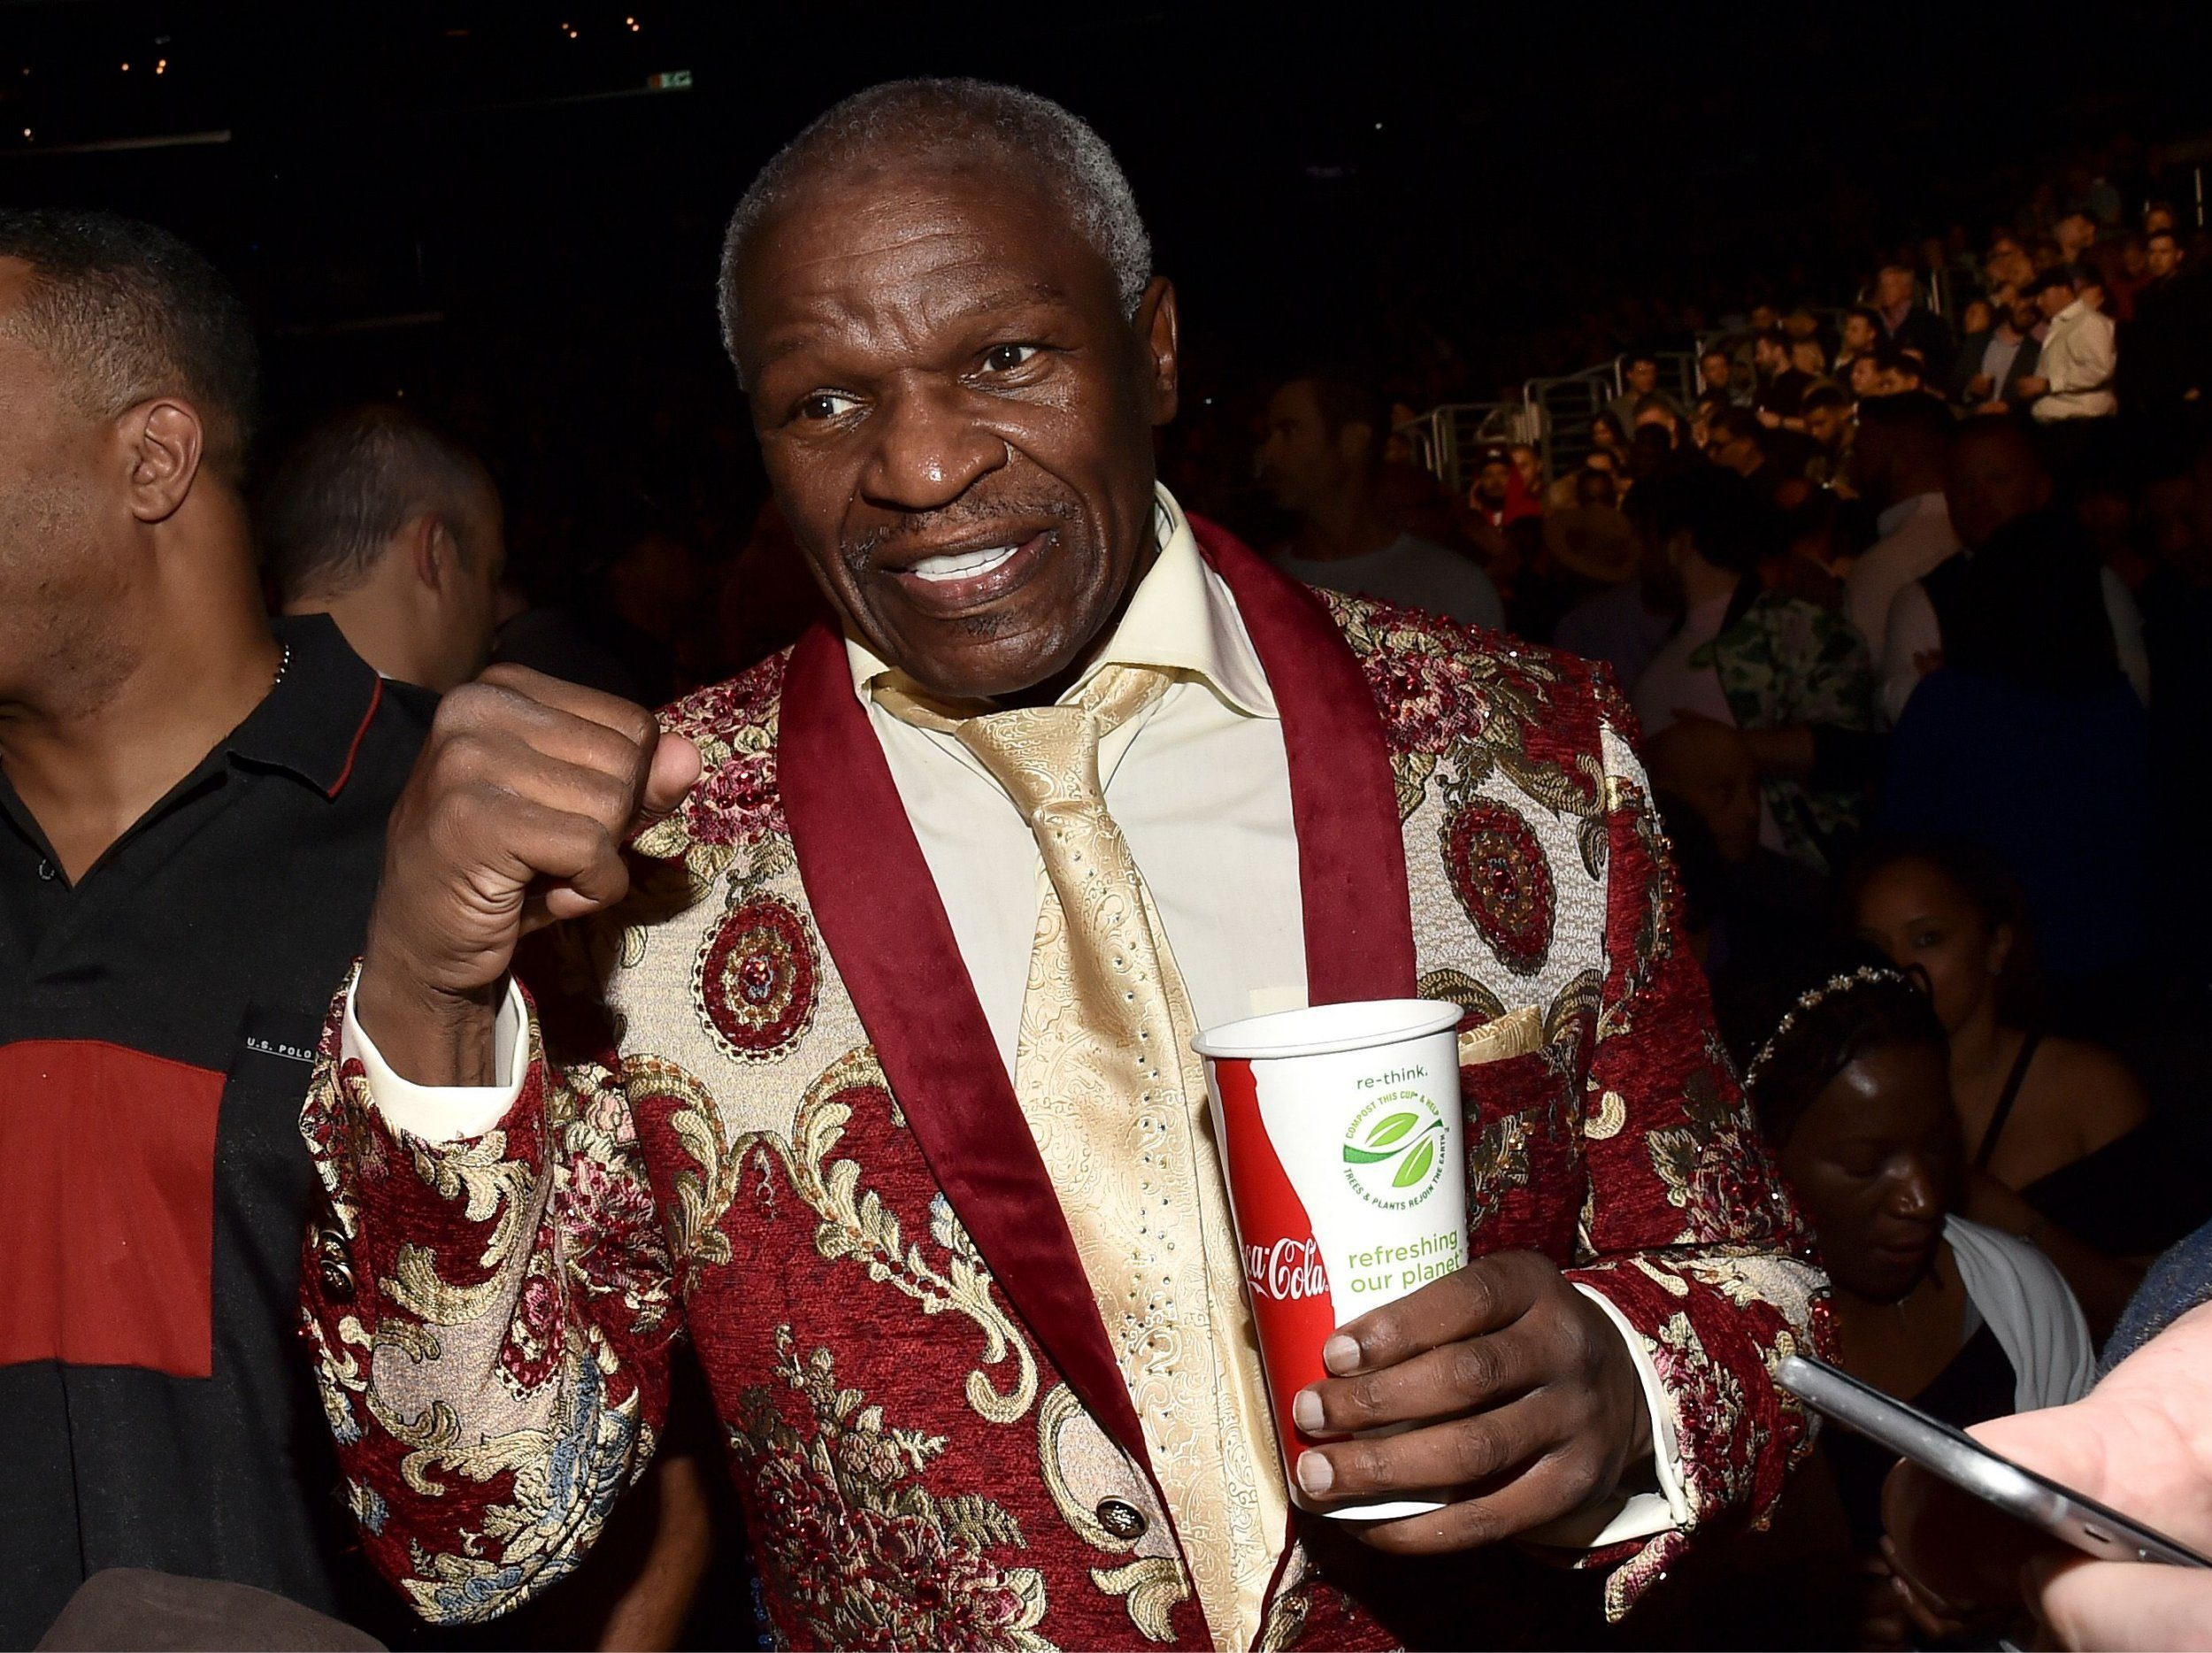 Mandatory Credit: Photo by Michael Buckner/Variety/REX (10011181o) Floyd Mayweather Sr. Showtime PPV presents Heavyweight Championship of the World: 'WILDER vs. FURY' Pre-Event VIP Party, Inside, Los Angeles, USA - 01 Dec 2018